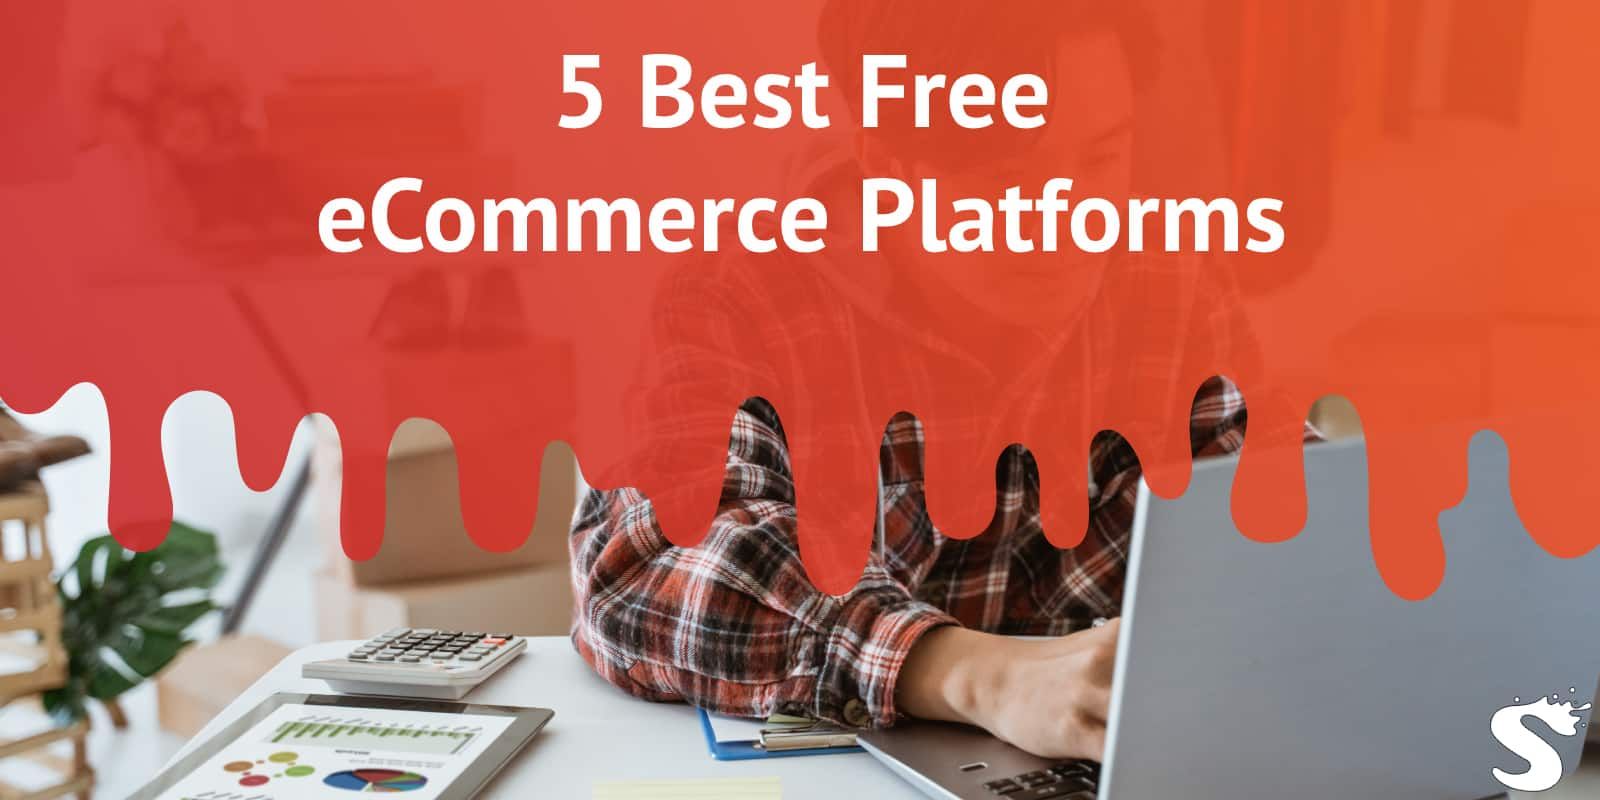 5 Best Free eCommerce Platforms To Use If You Are On a Budget